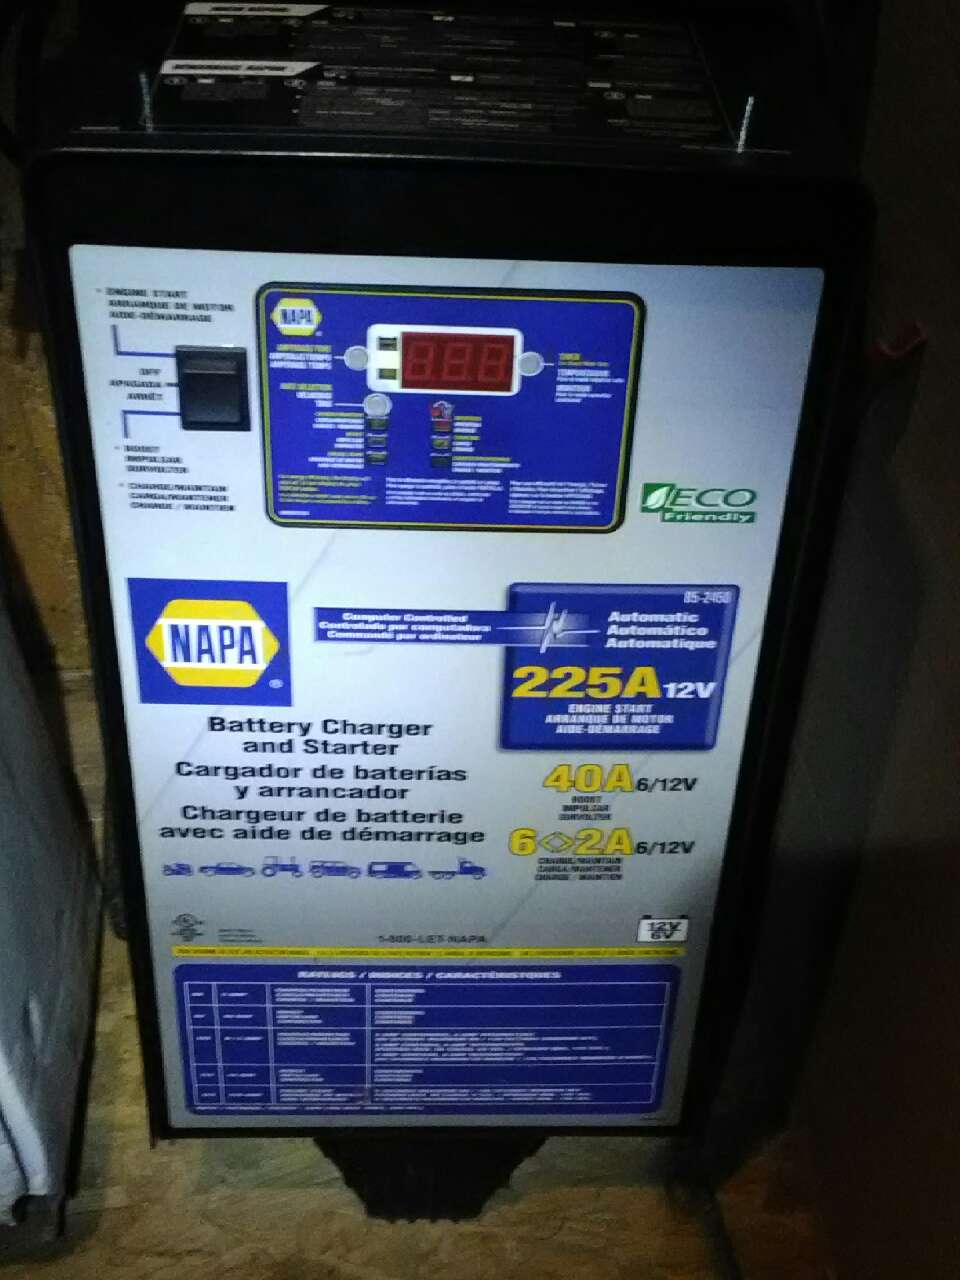 Napa Battery Charger Wiring Diagram : Schumacher battery charger wiring diagram se